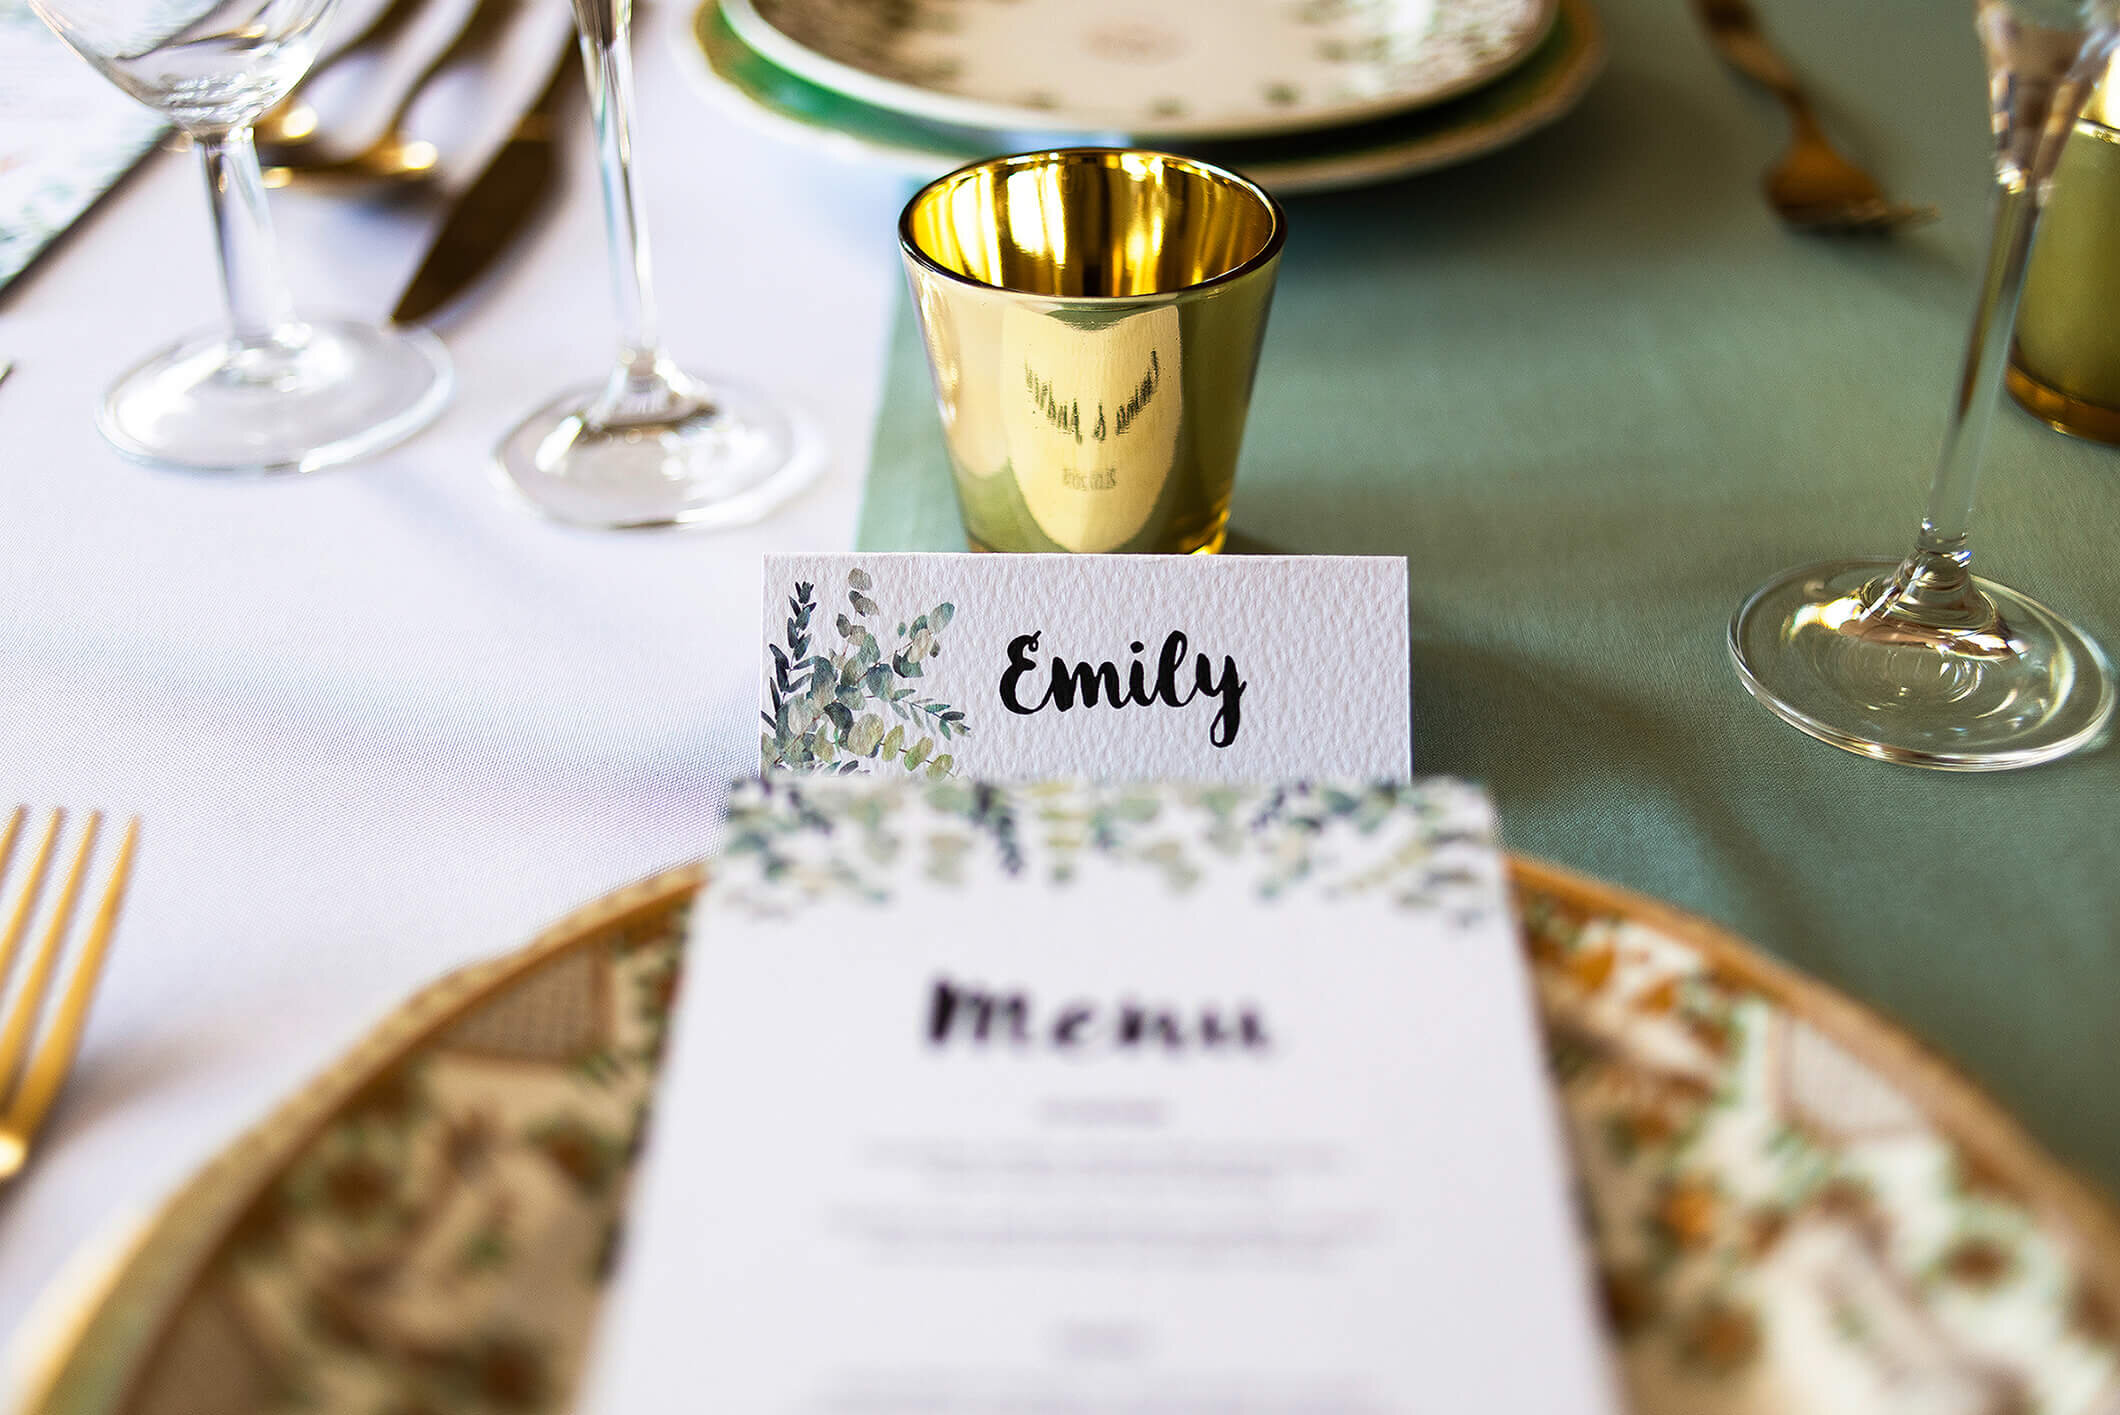 Design By Emily Rustic Eucalyptus Wedding Menu on plate and place name card, at Nurstead Court Wedding Venue, Kent.